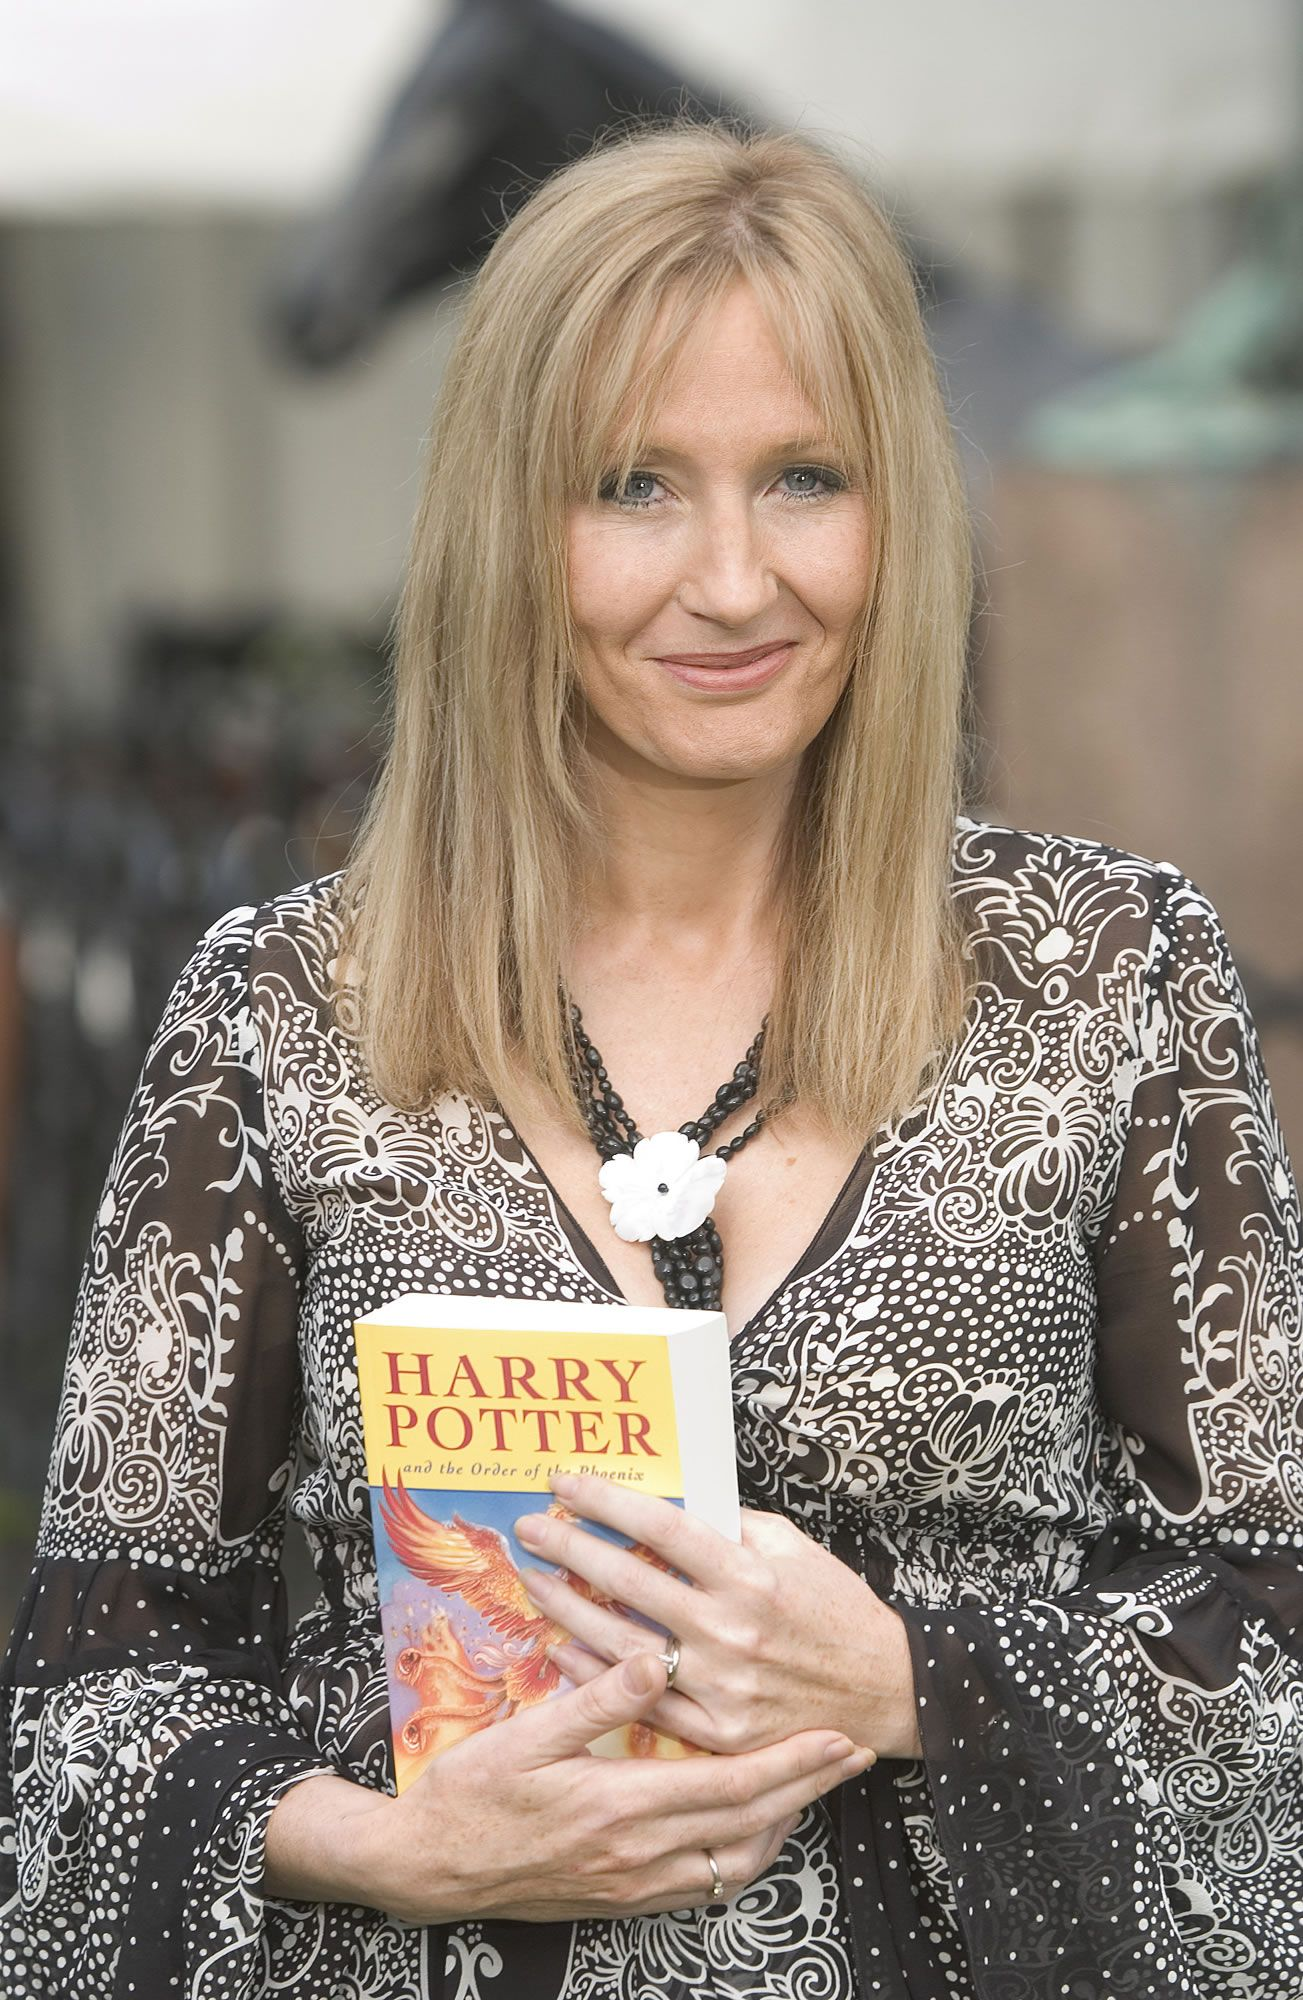 j k rowling hot google search j k rowling search j k rowling hot google search